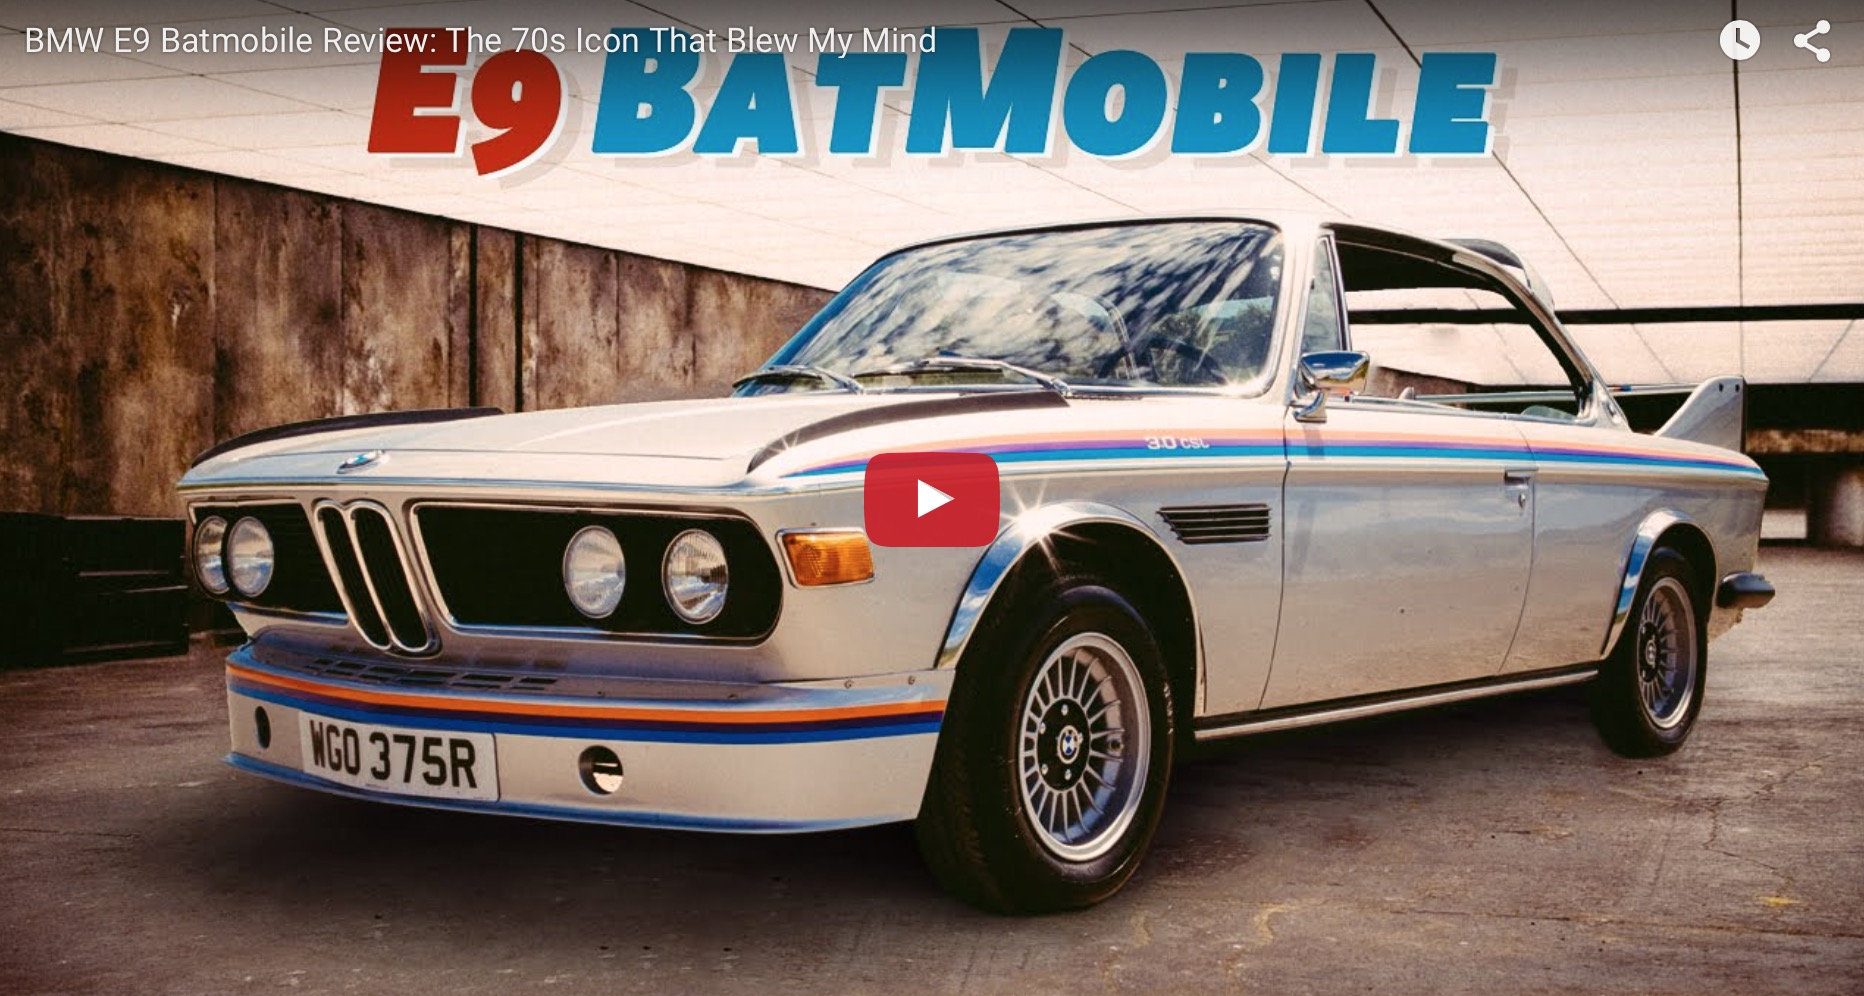 Bmw E9 3 0 Csl Batmobile Review The 70s Icon That Blew My